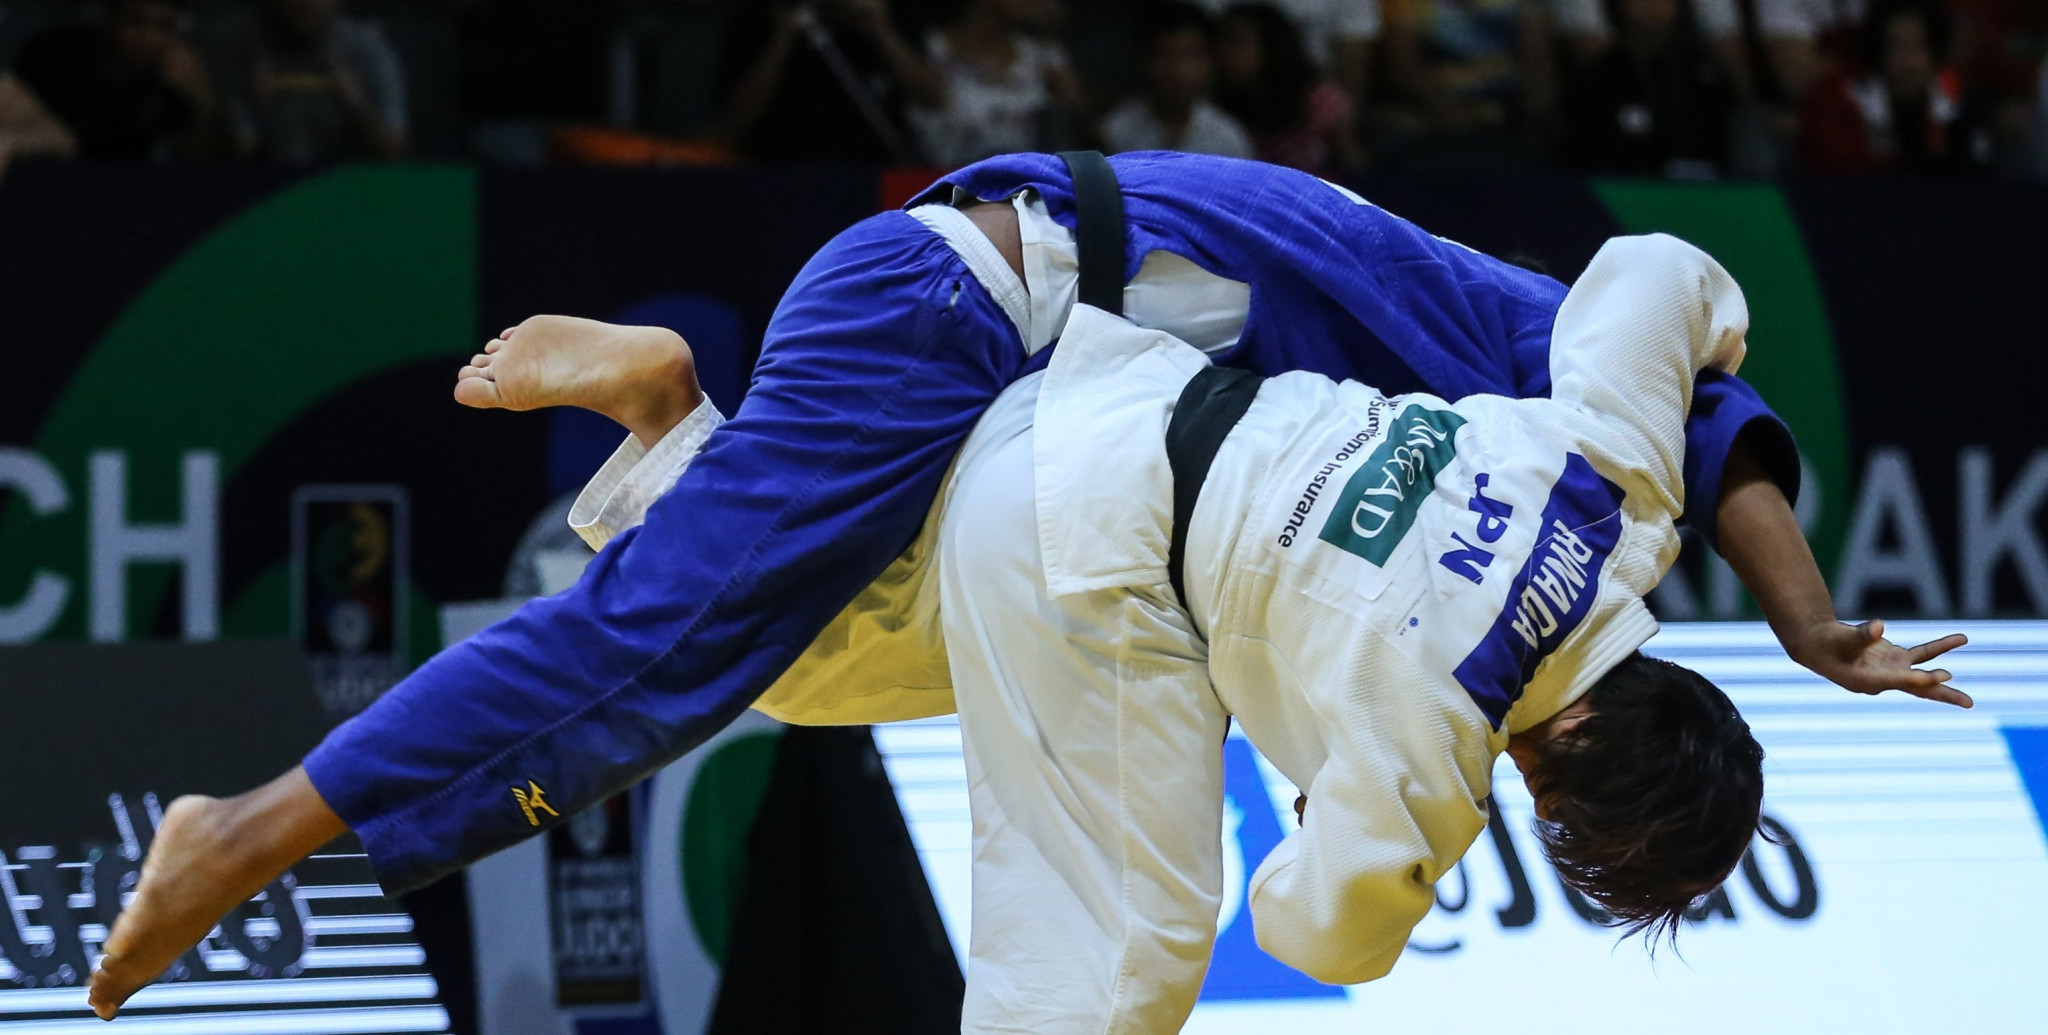 Wada defends title as Japan dominate IJF World Junior Championships